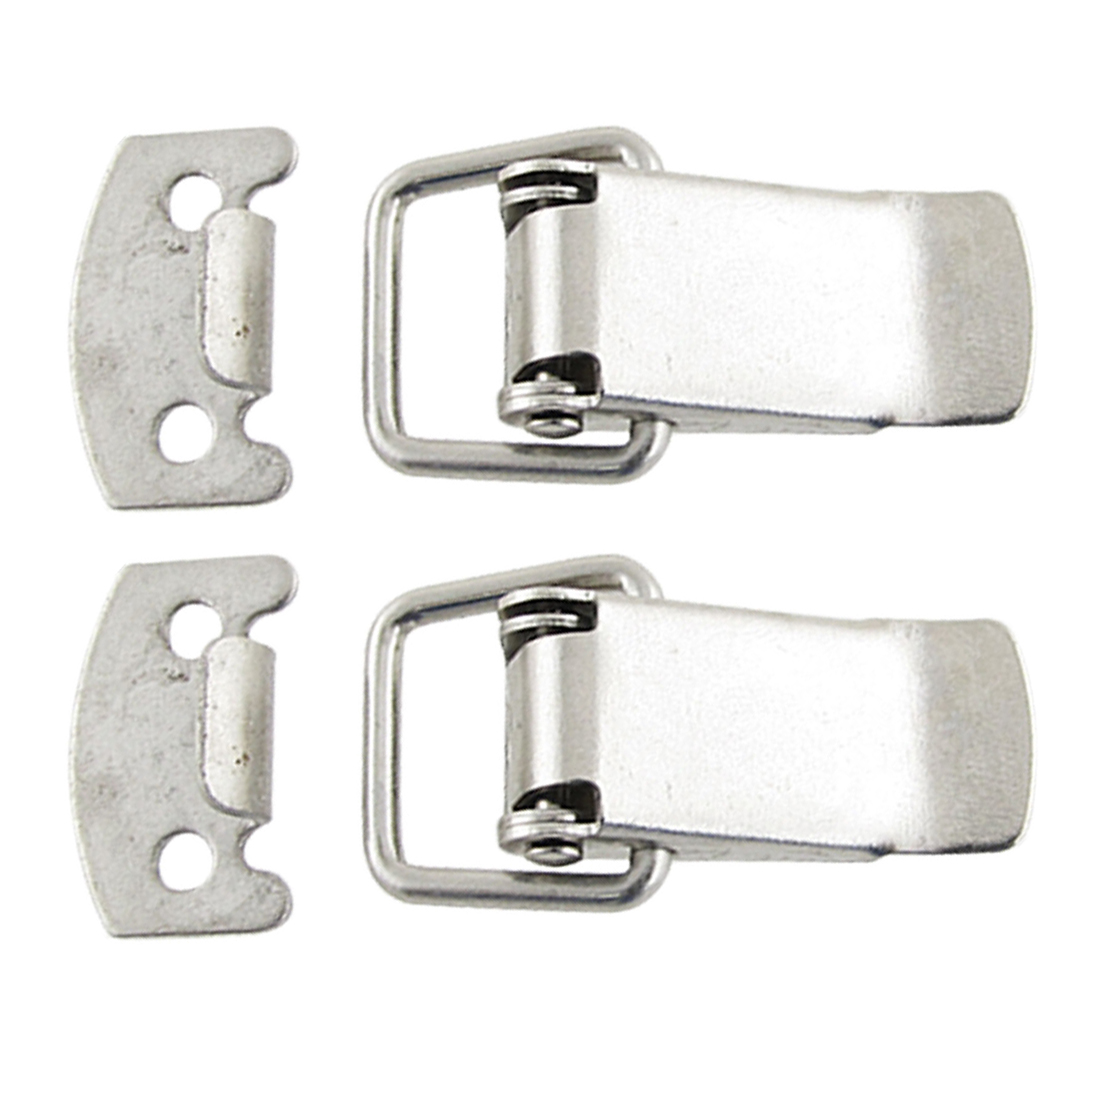 2 Sets Cabinet Drawer Metal Straight Loop Latches Catches